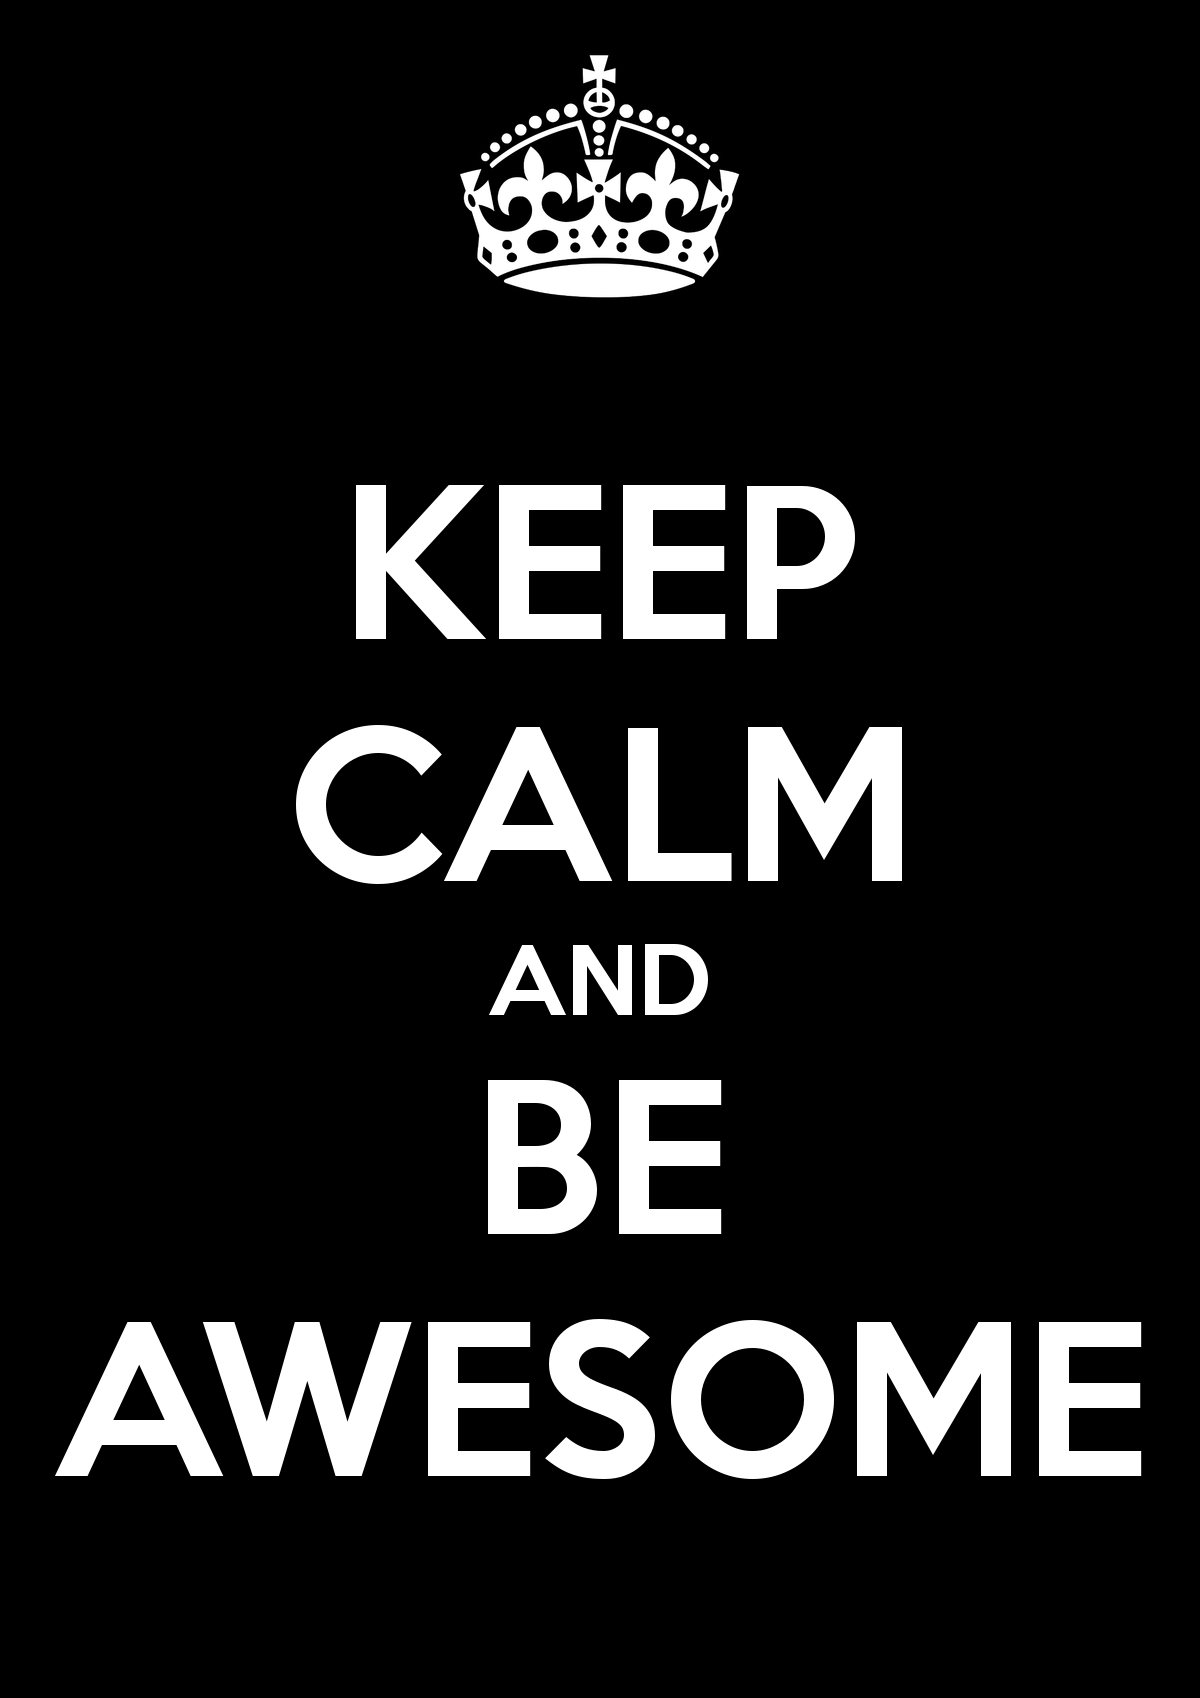 keep-calm-and-be-awesome-427.png